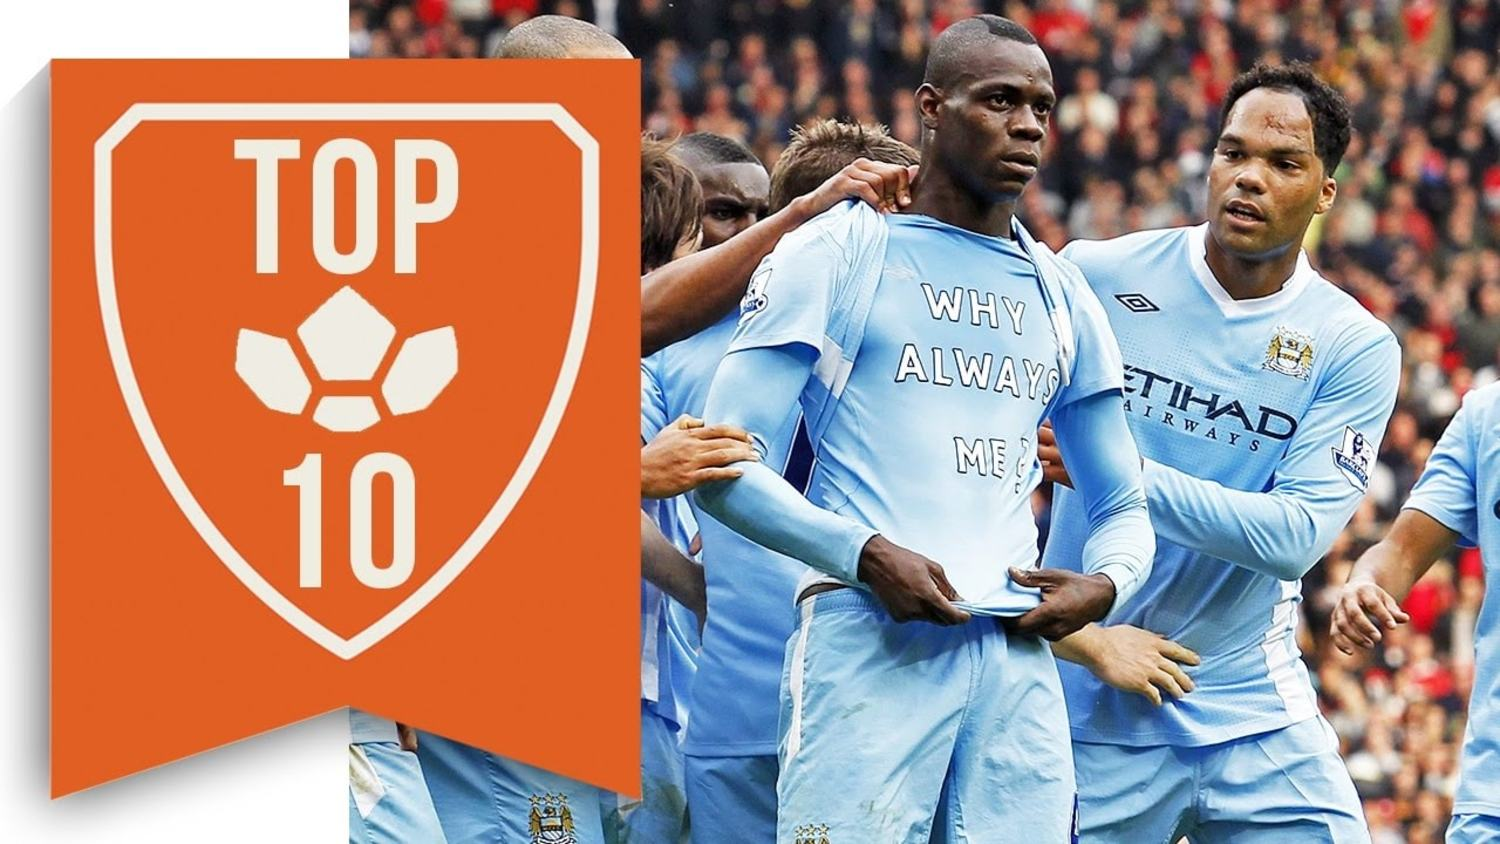 The Top 10 Most Bizarre Celebrations ft. Balotelli & more